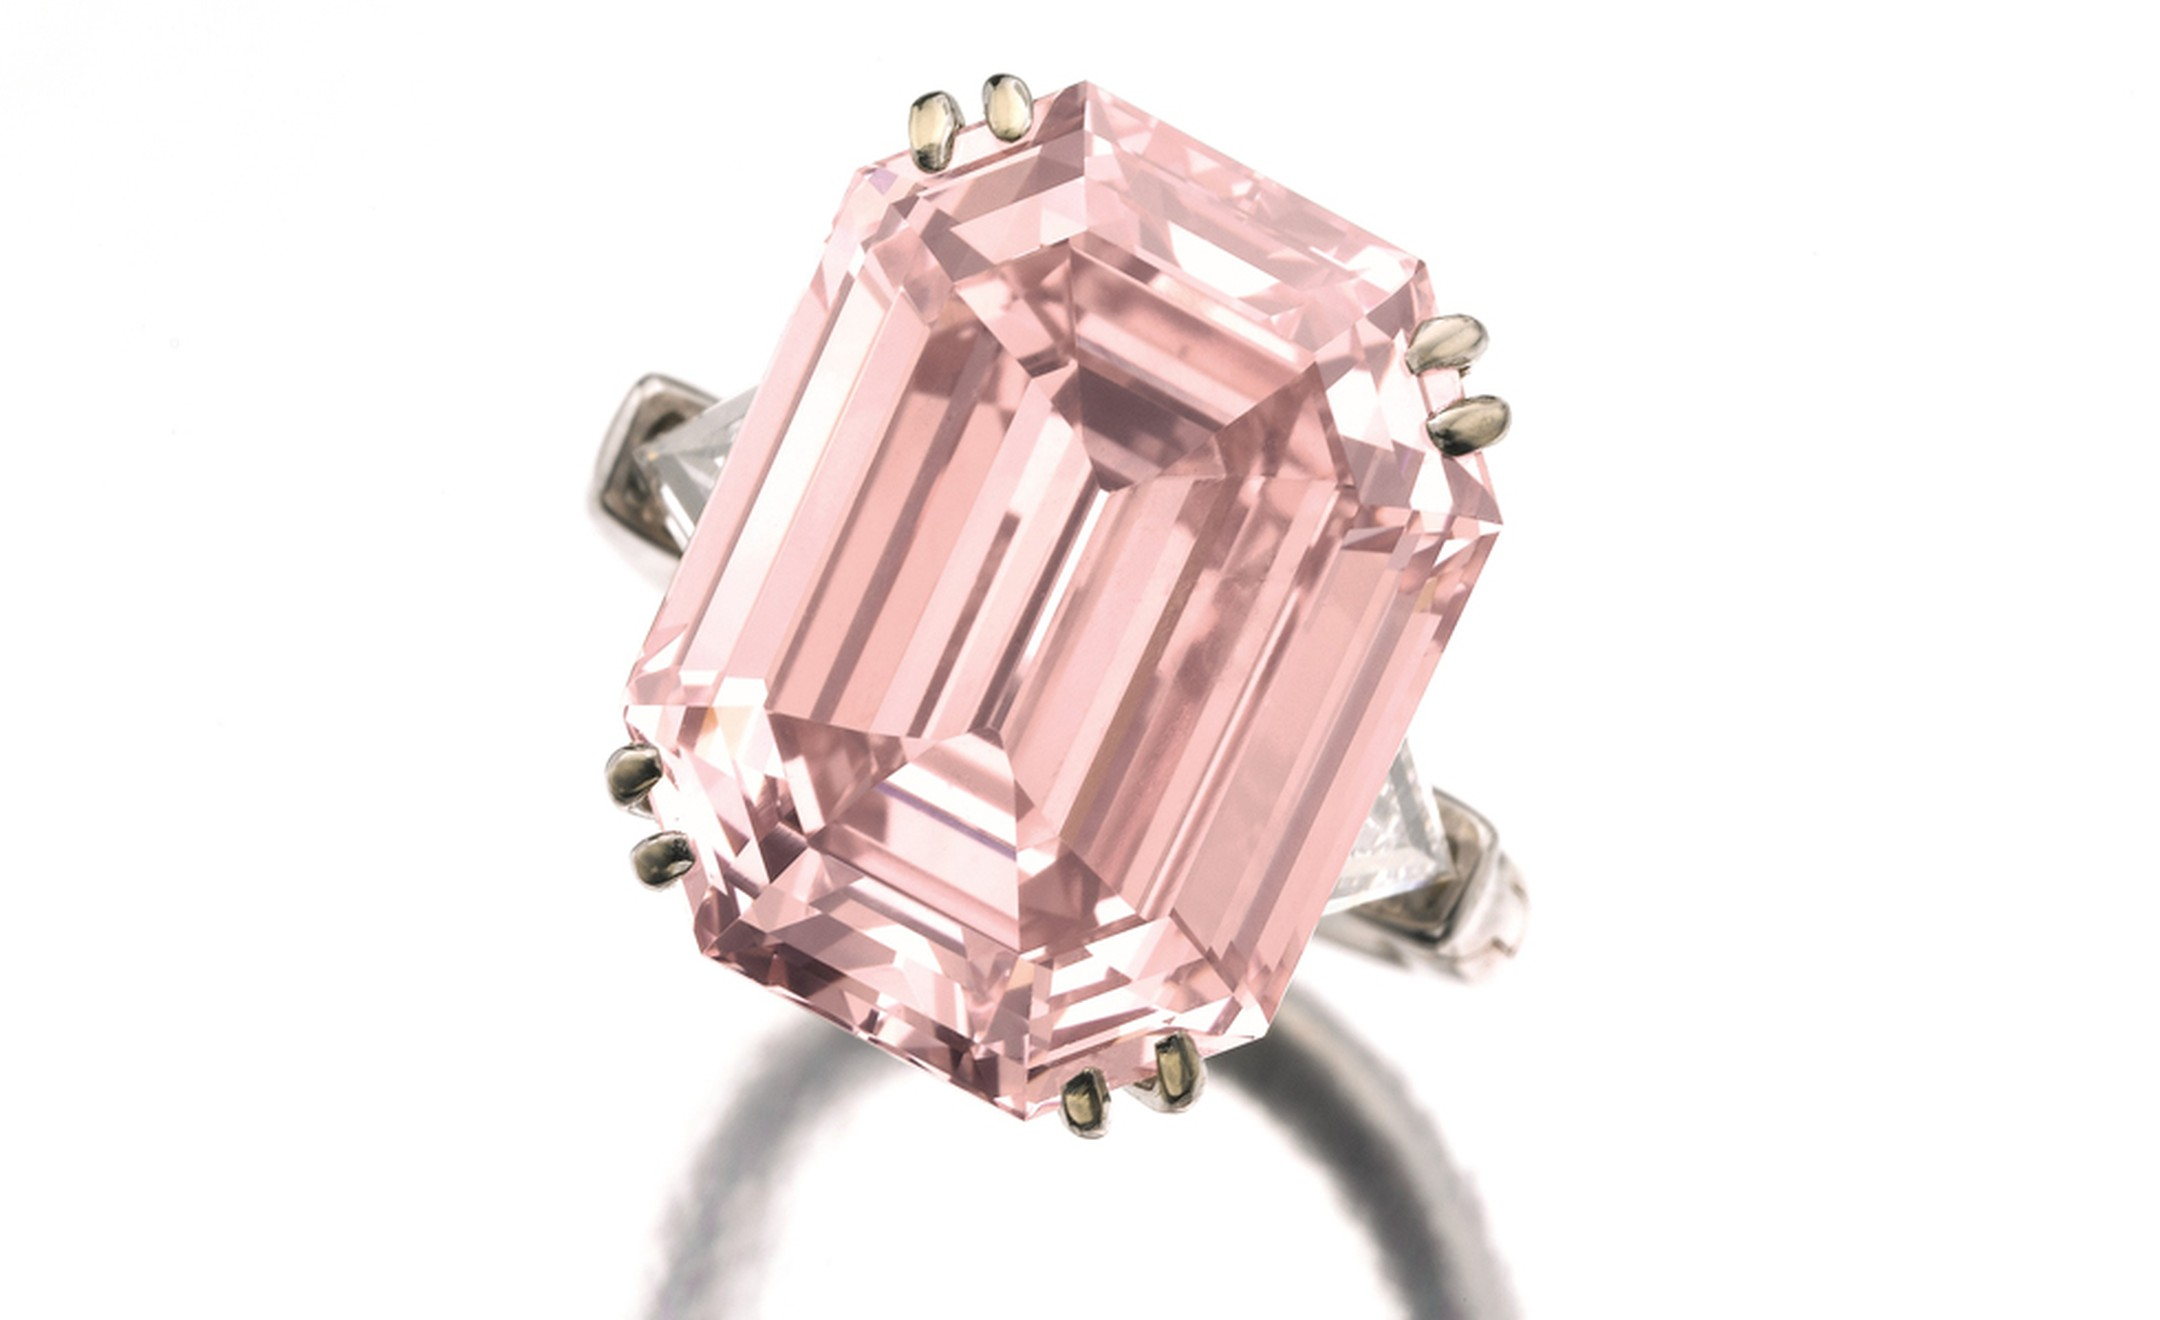 Lot 491. Very important and rare fancy intense pink diamond ring sold for US10.8 million (CHF 9,602,500) making it the 9th highest price paid for a pink diamond at auction. The pre-sale estimate was CHF 8,300,000 - CHF 14,8000,000